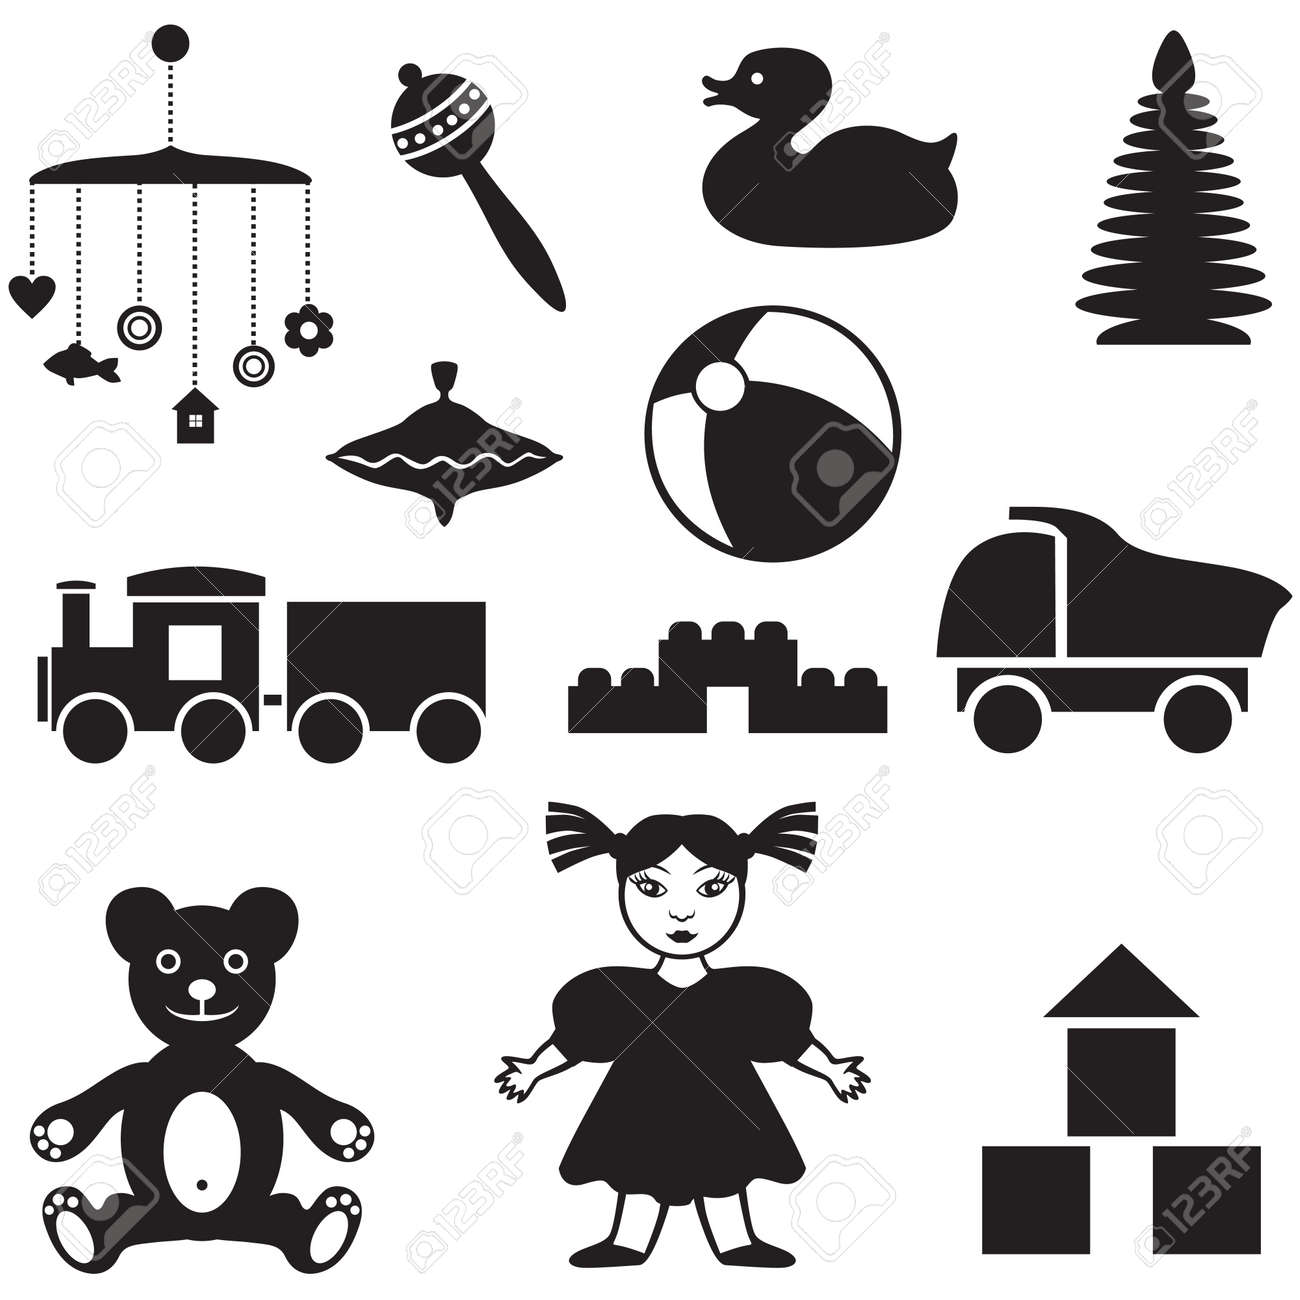 Set Of Silhouette Images Of Children S Toys Royalty Free Cliparts